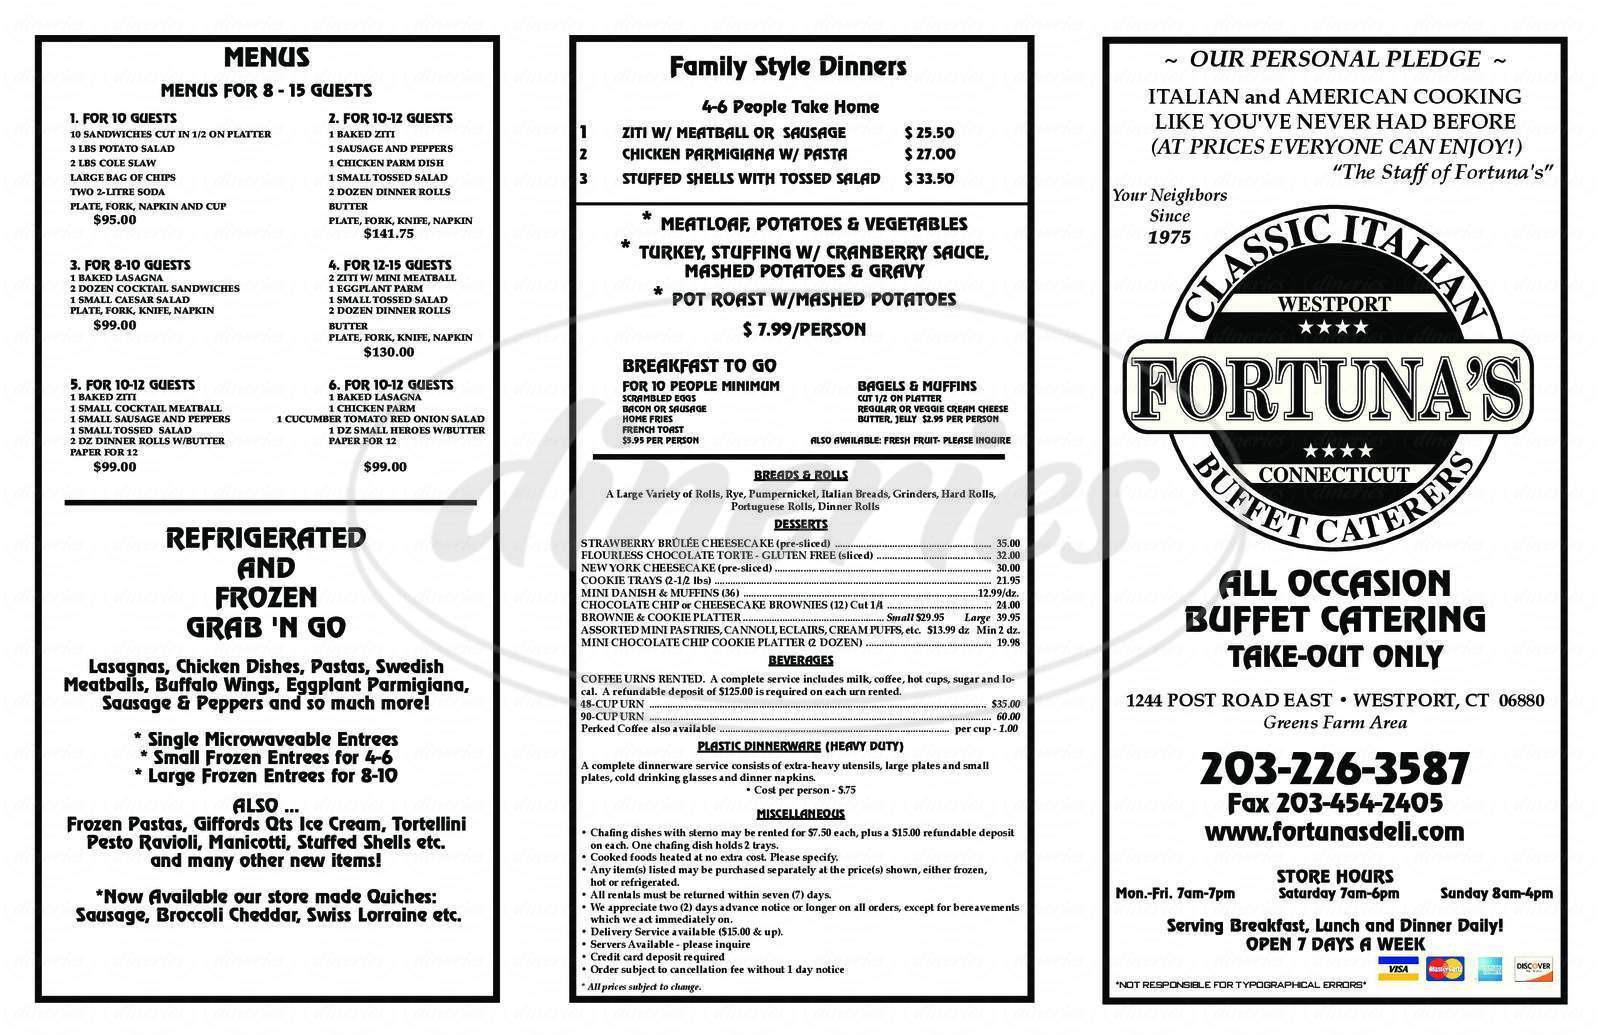 menu for Fortuna's Deli & Caterers of Westport